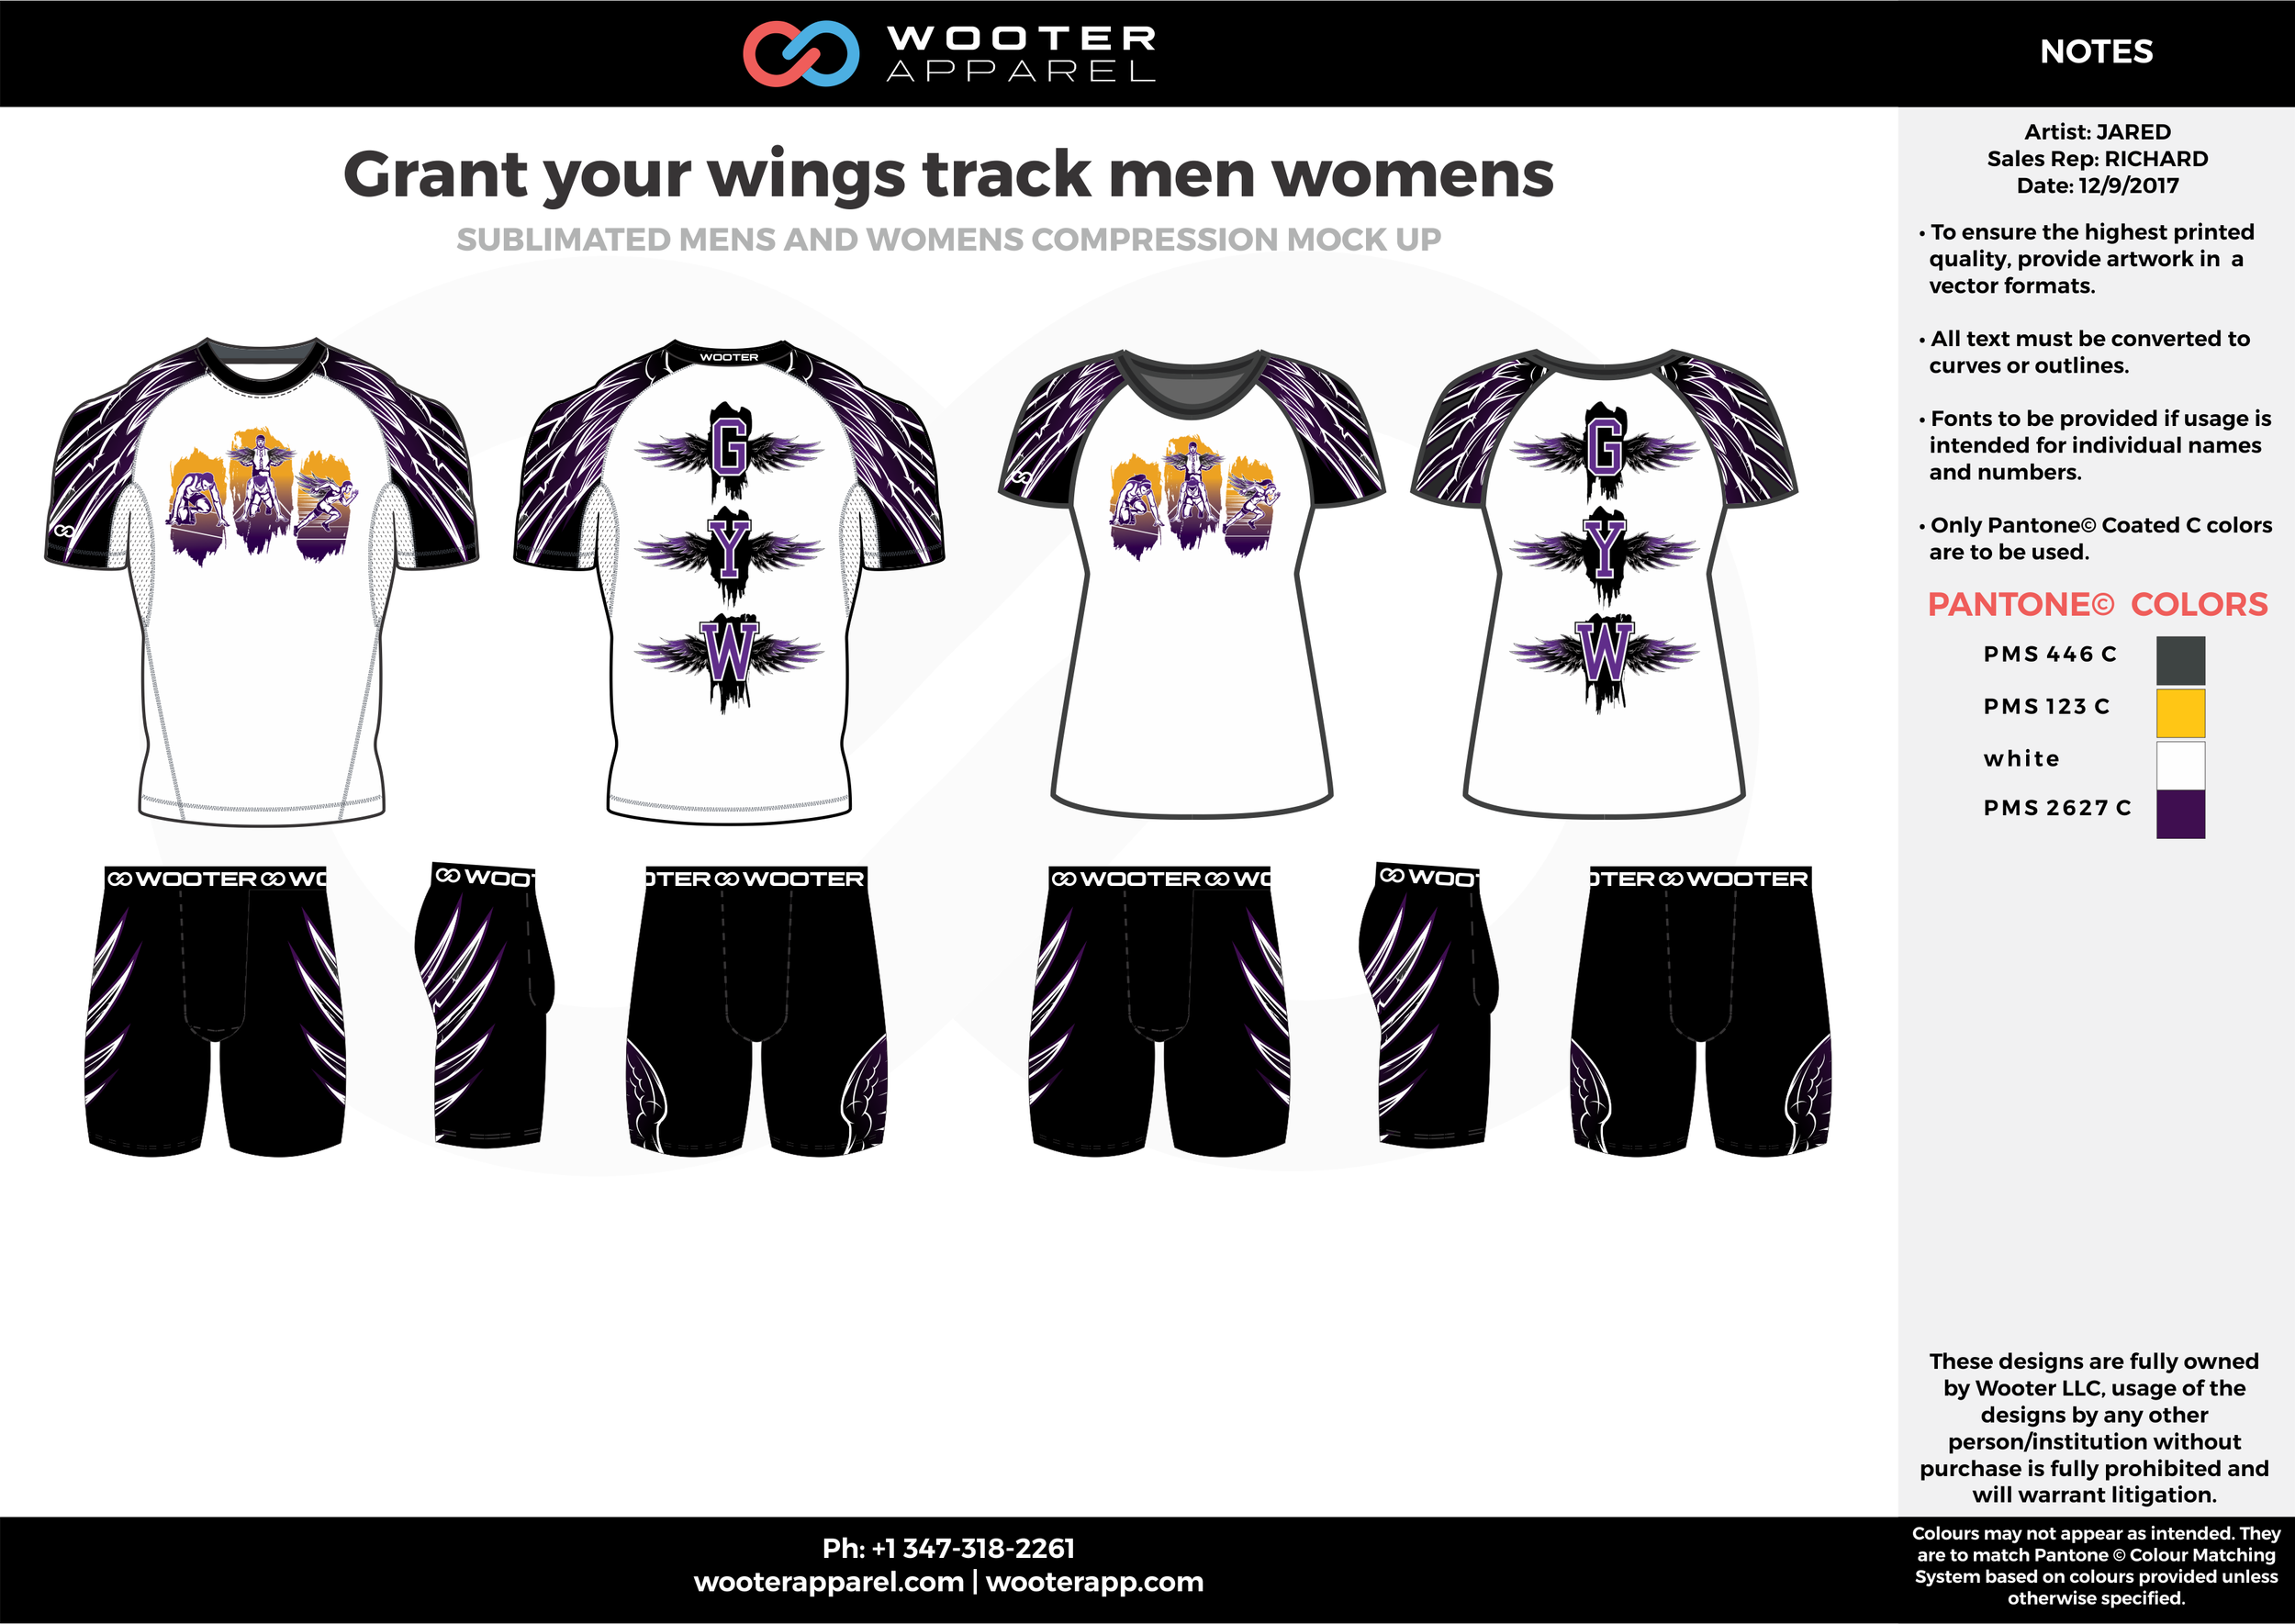 Crant your wings track men womens Black Yellow White and Purple Sublimated Compression Track Uniforms Shirts and Shorts